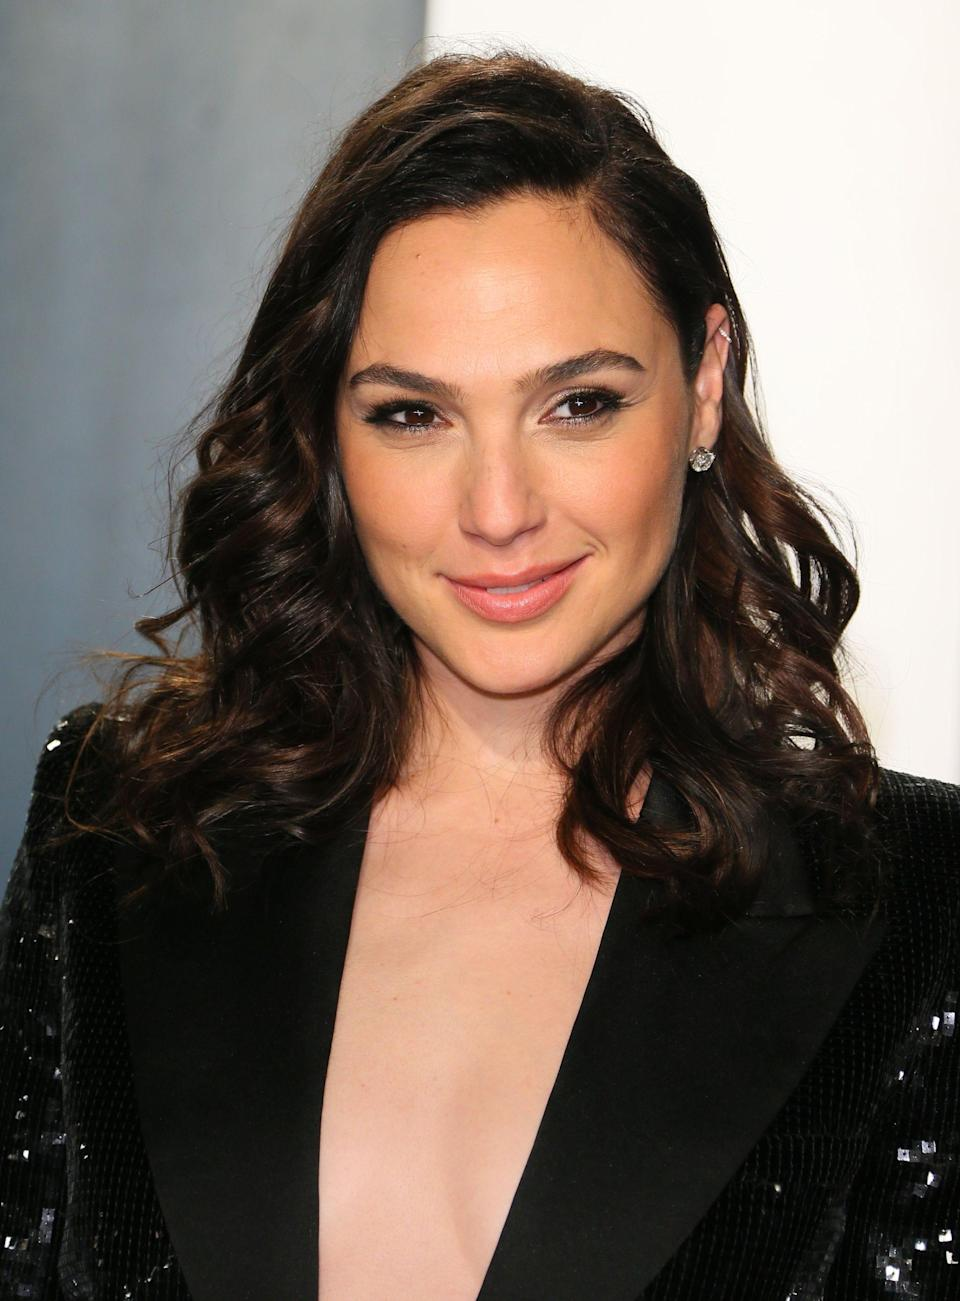 """Back in March, Gal Gadot rounded up some of her celebrity friends for a quarantine cover of """"Imagine,"""" which she shared to her Instagram."""